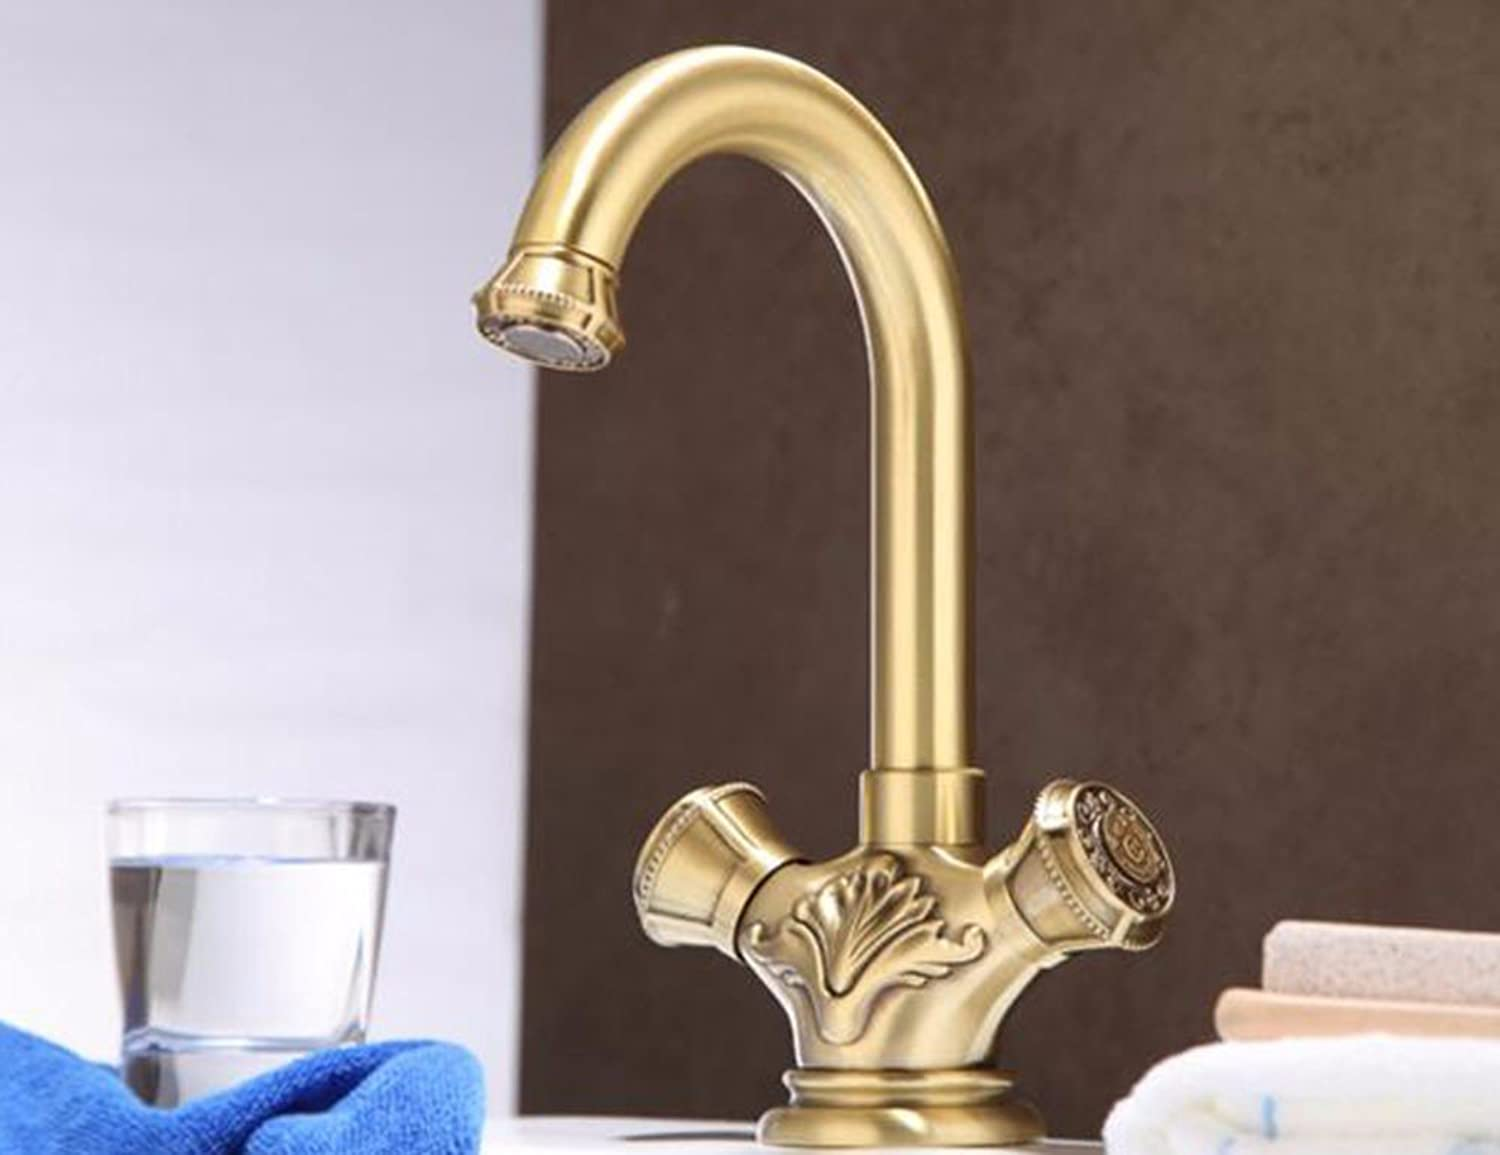 Qmpzg-Cu All Continental Carved Faucet?Cold Water Basin Basin Basin Mixer??Dual Single Hole Tap